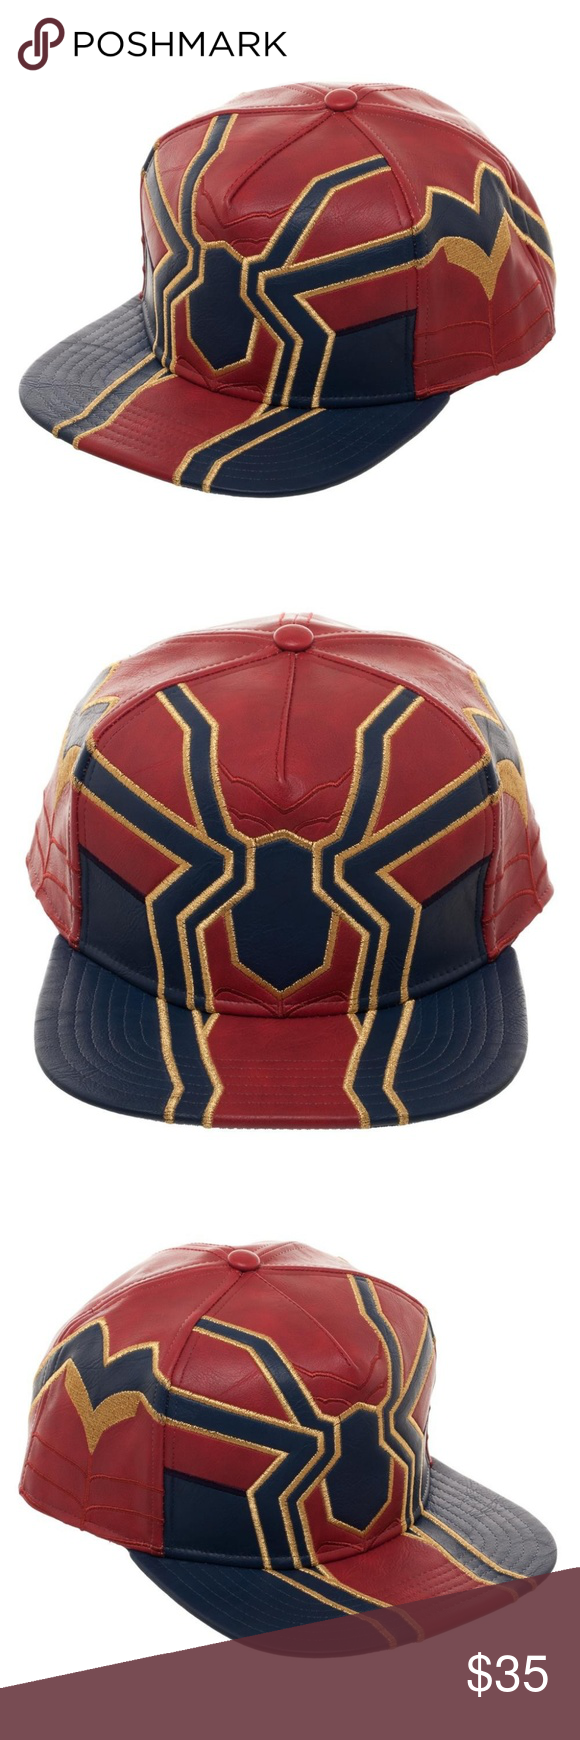 cc0441a6700 Iron Spider-Man Snapback Hat Avengers Infinity War This is for 1 Marvel  Comics